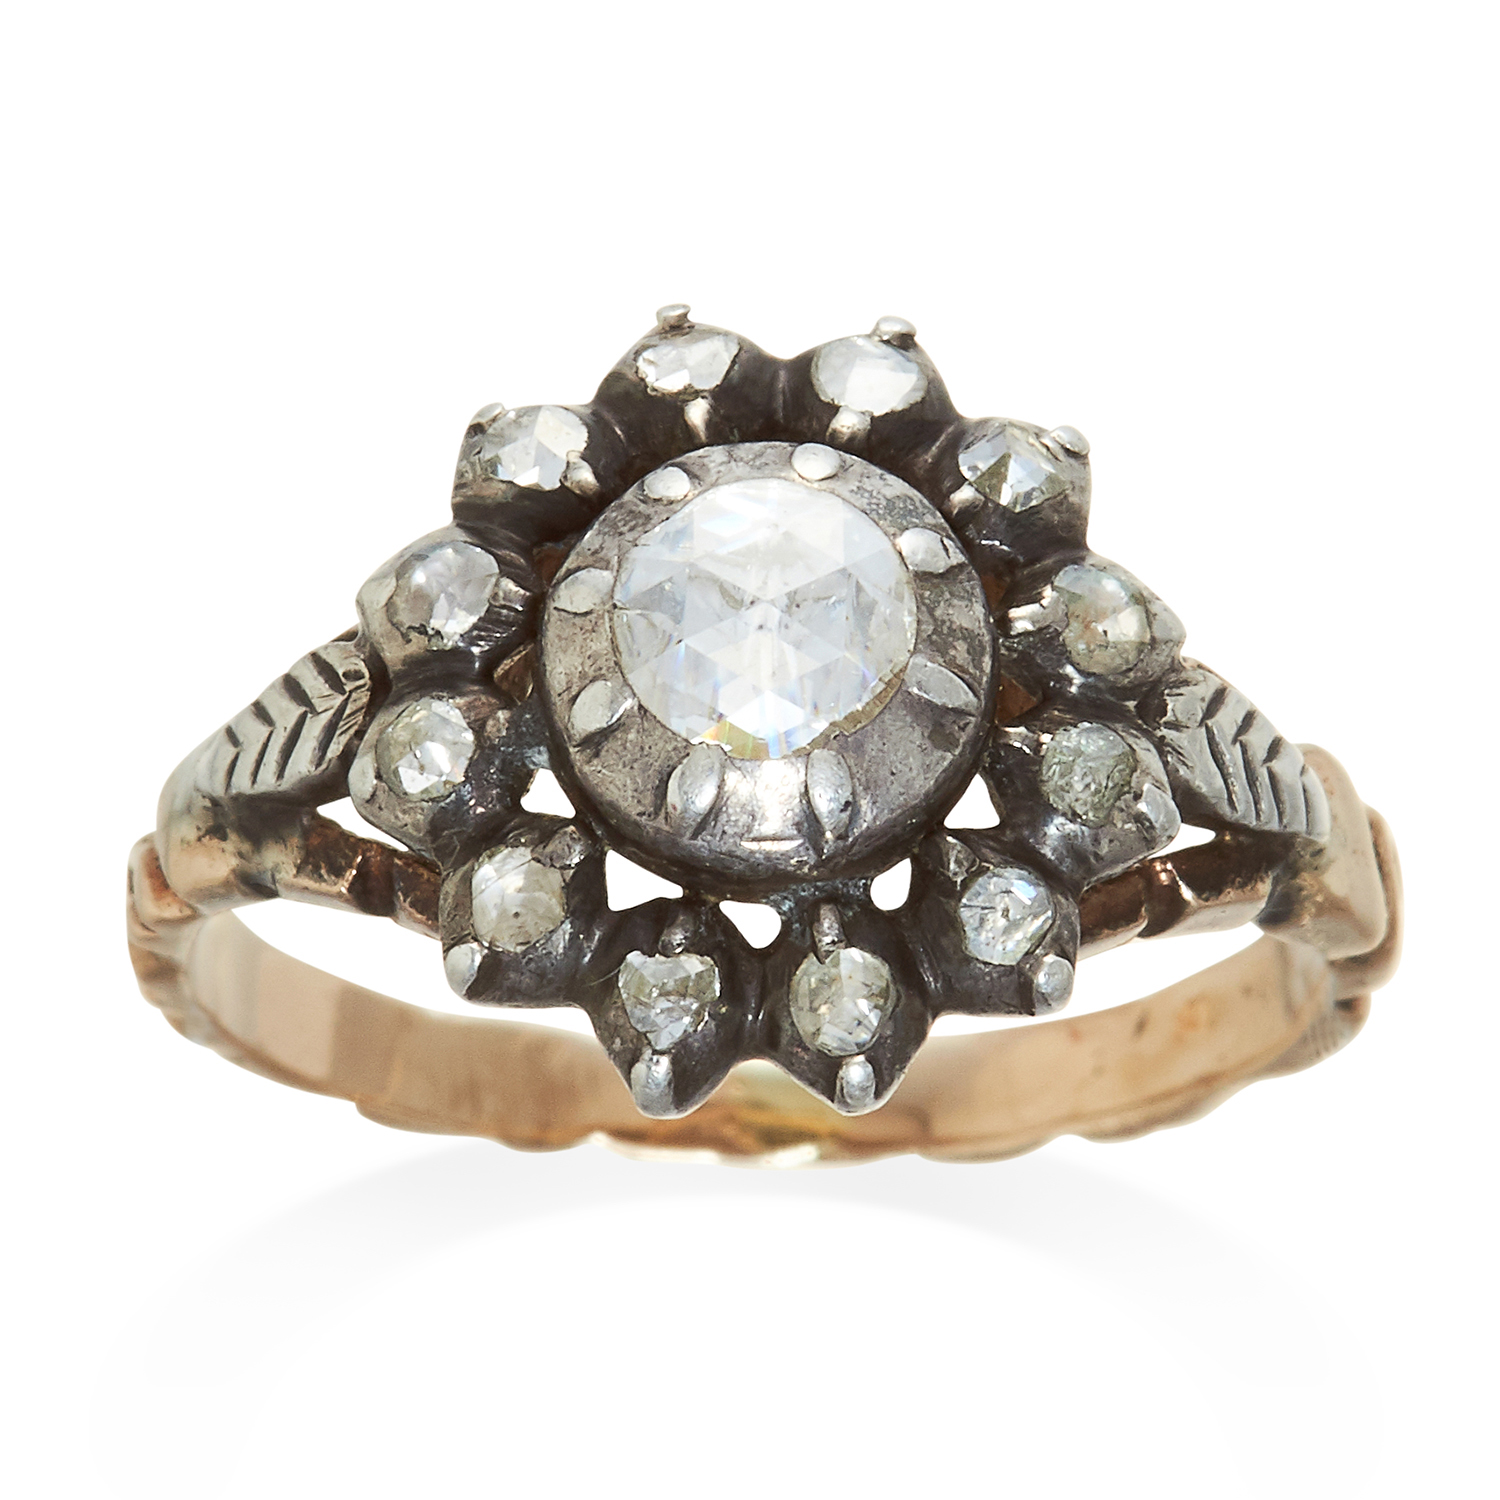 Los 321 - AN ANTIQUE DIAMOND CLUSTER RING, 19TH CENTURY in yellow gold and silver, set with rose cut diamonds,